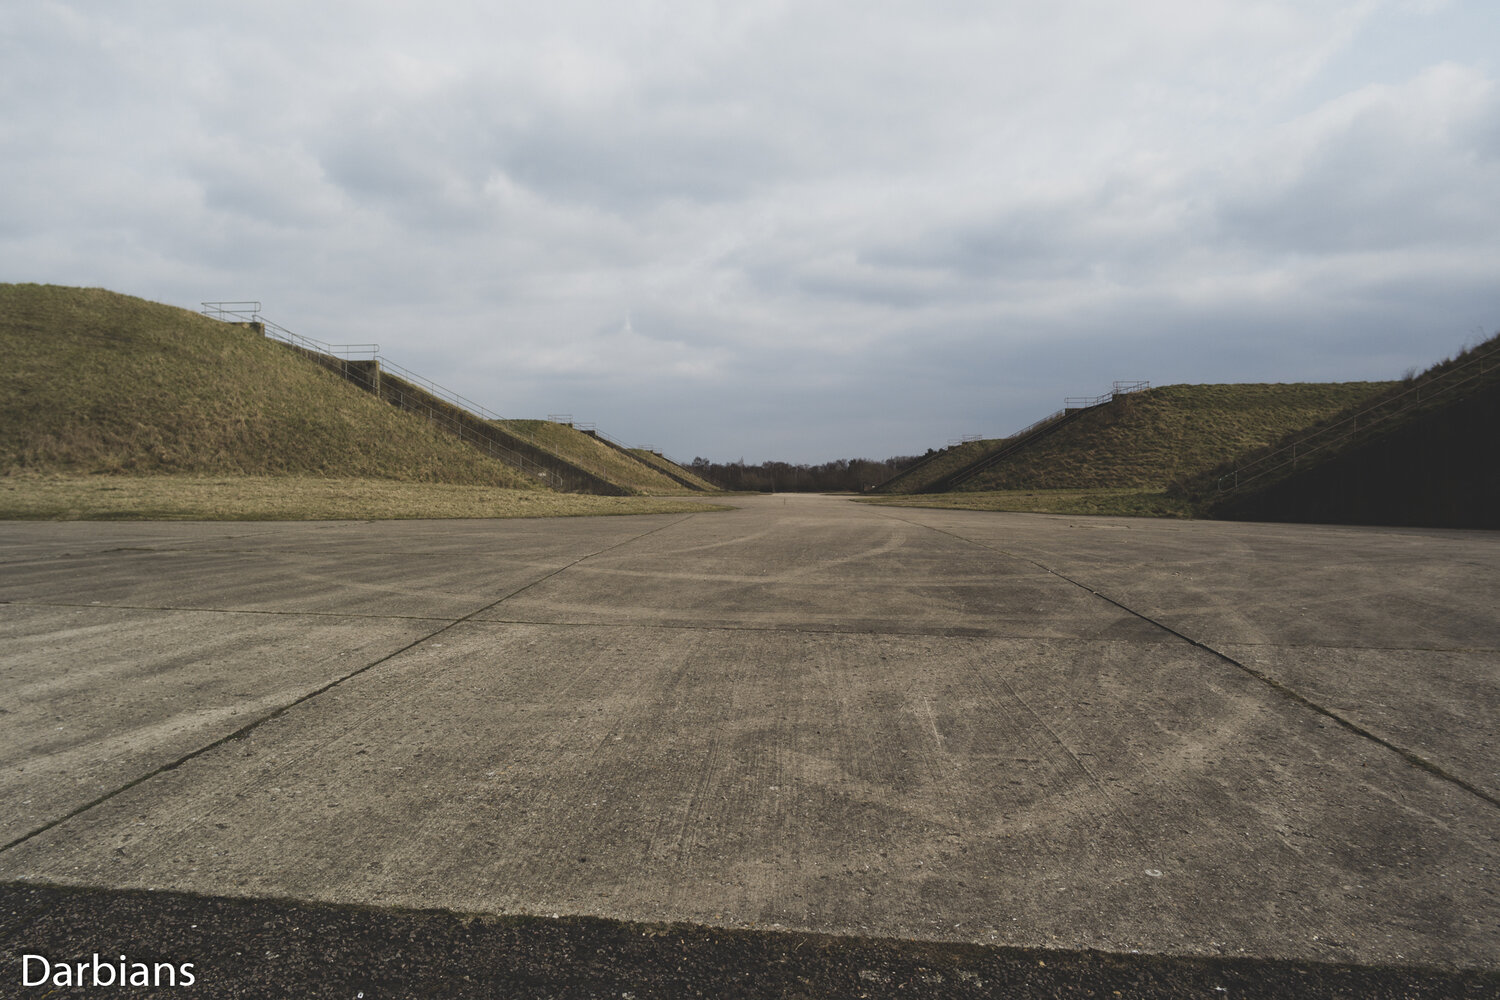 RAF Greenham Common: A different view of the central area.